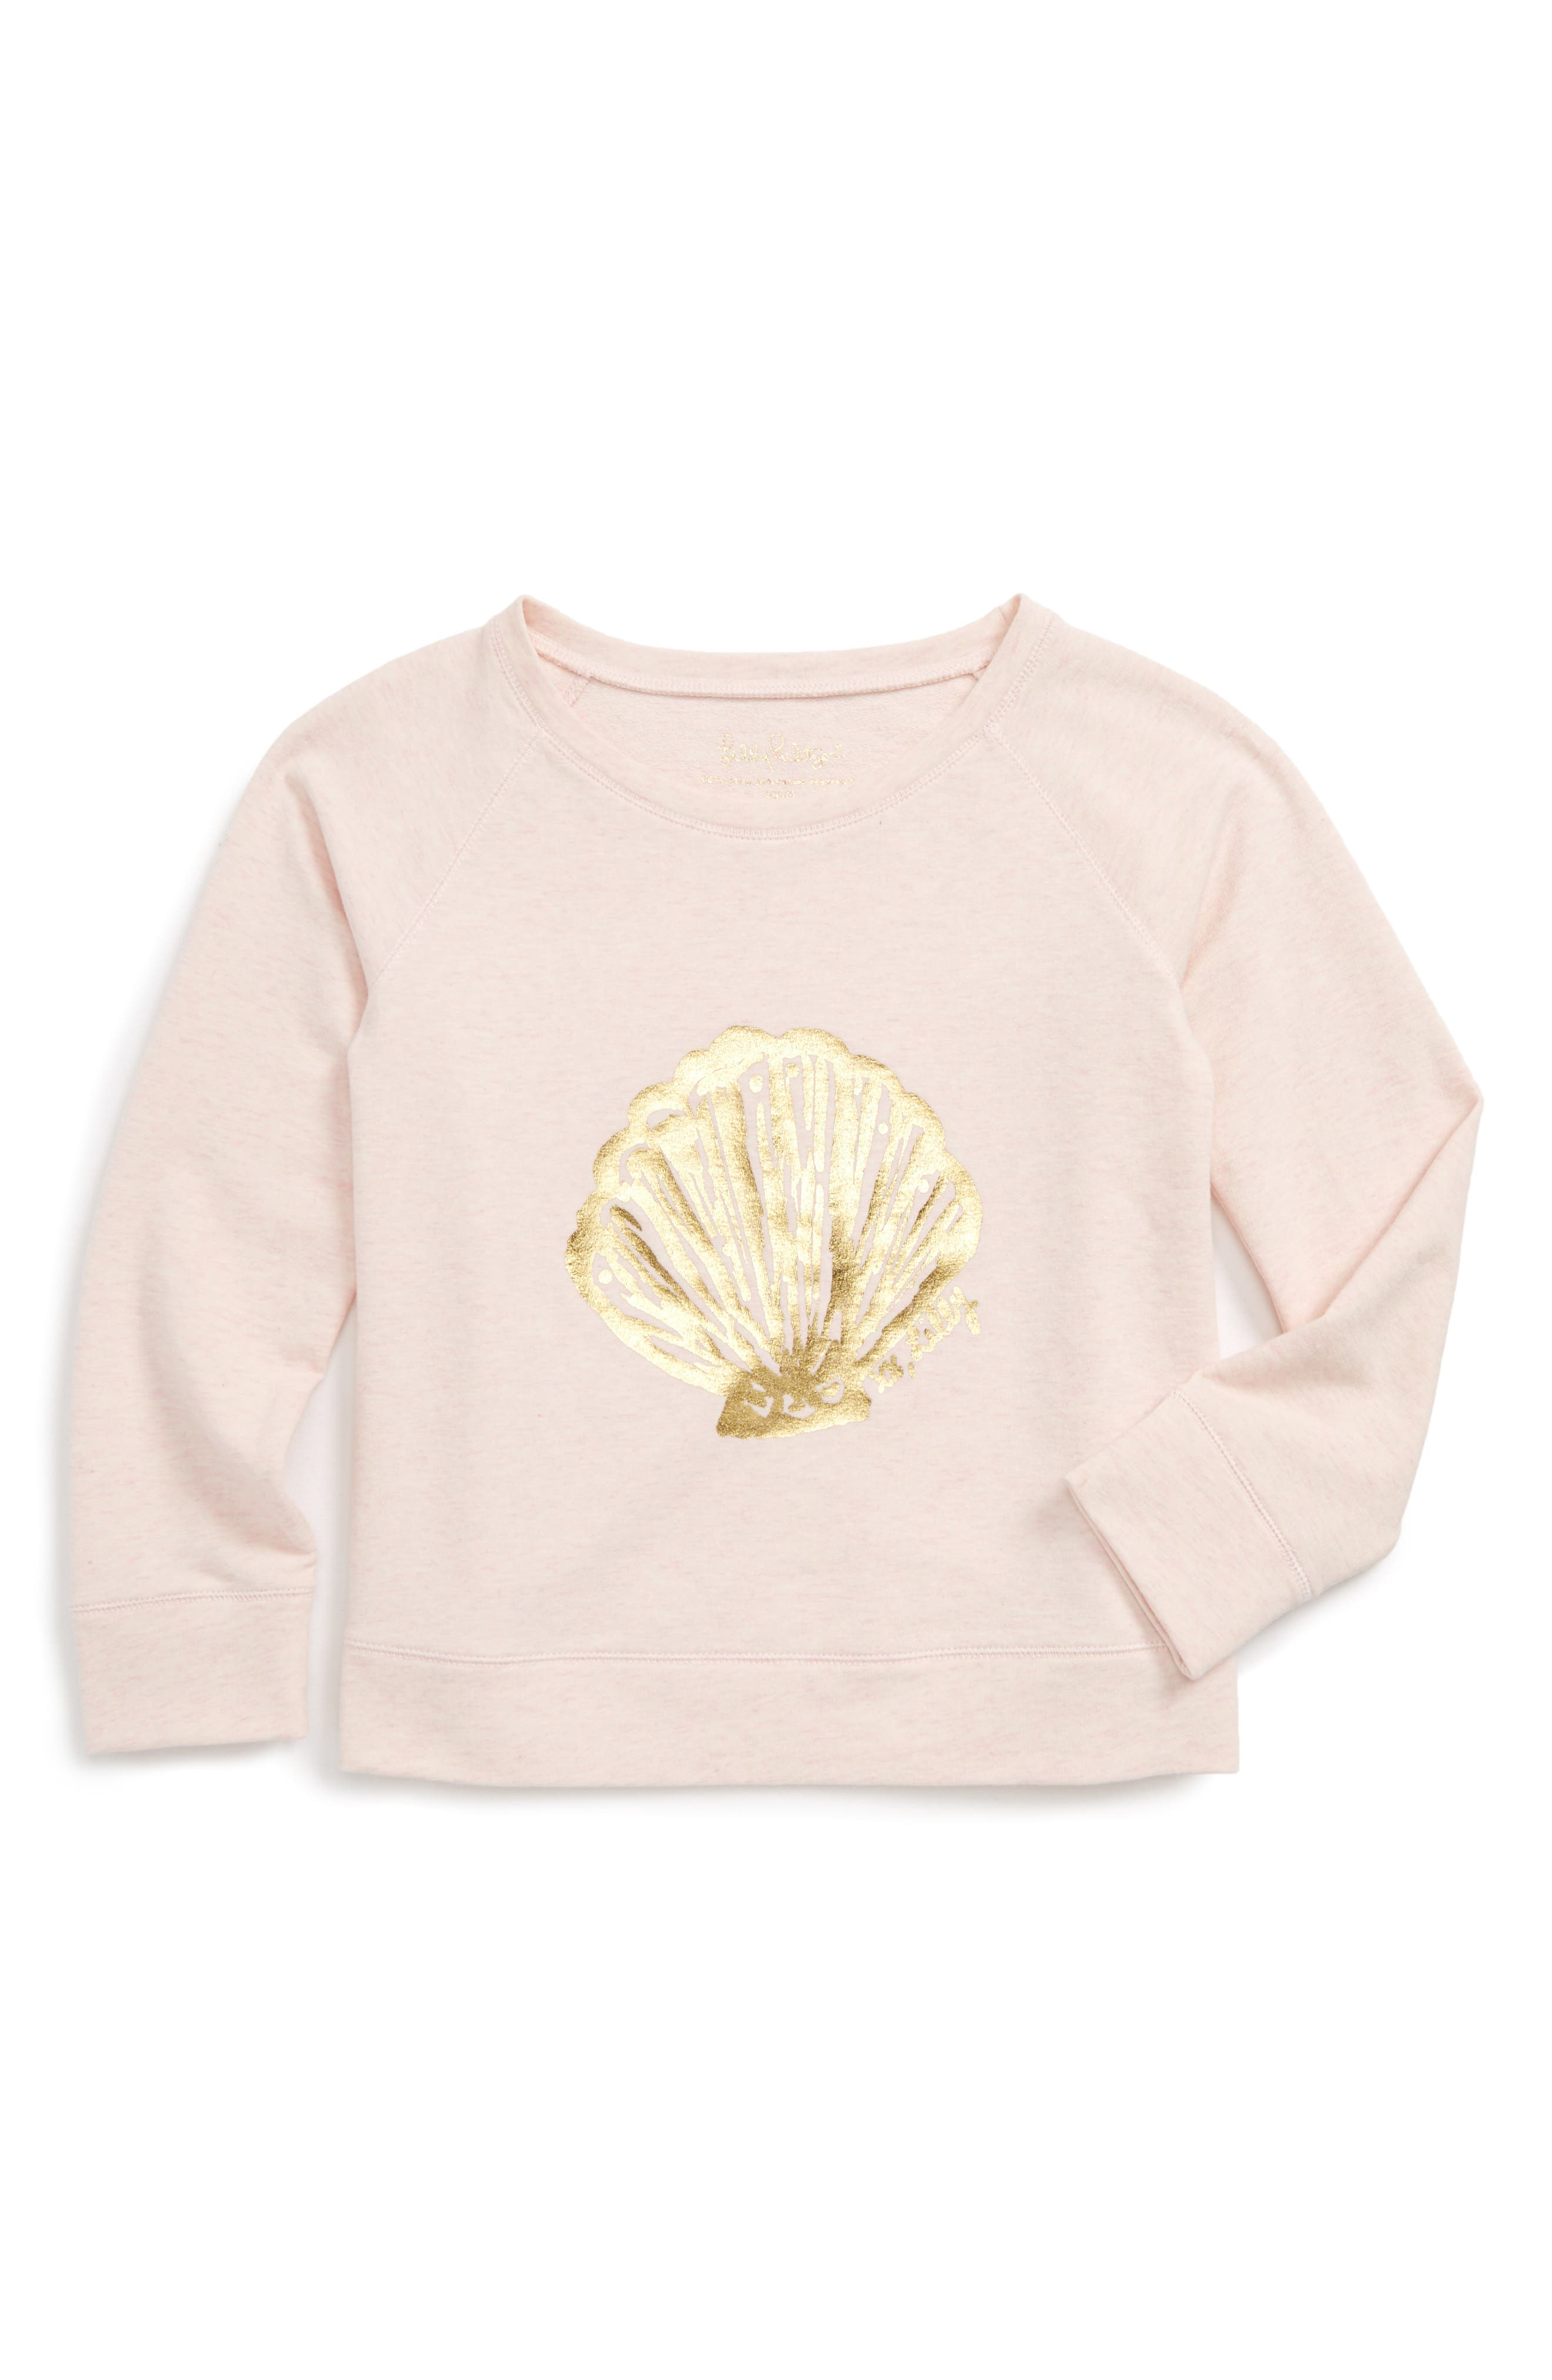 Lilly Pulitzer Shara Graphic Print Sweatshirt (Toddler Girls, Little Girls & Big Girls)